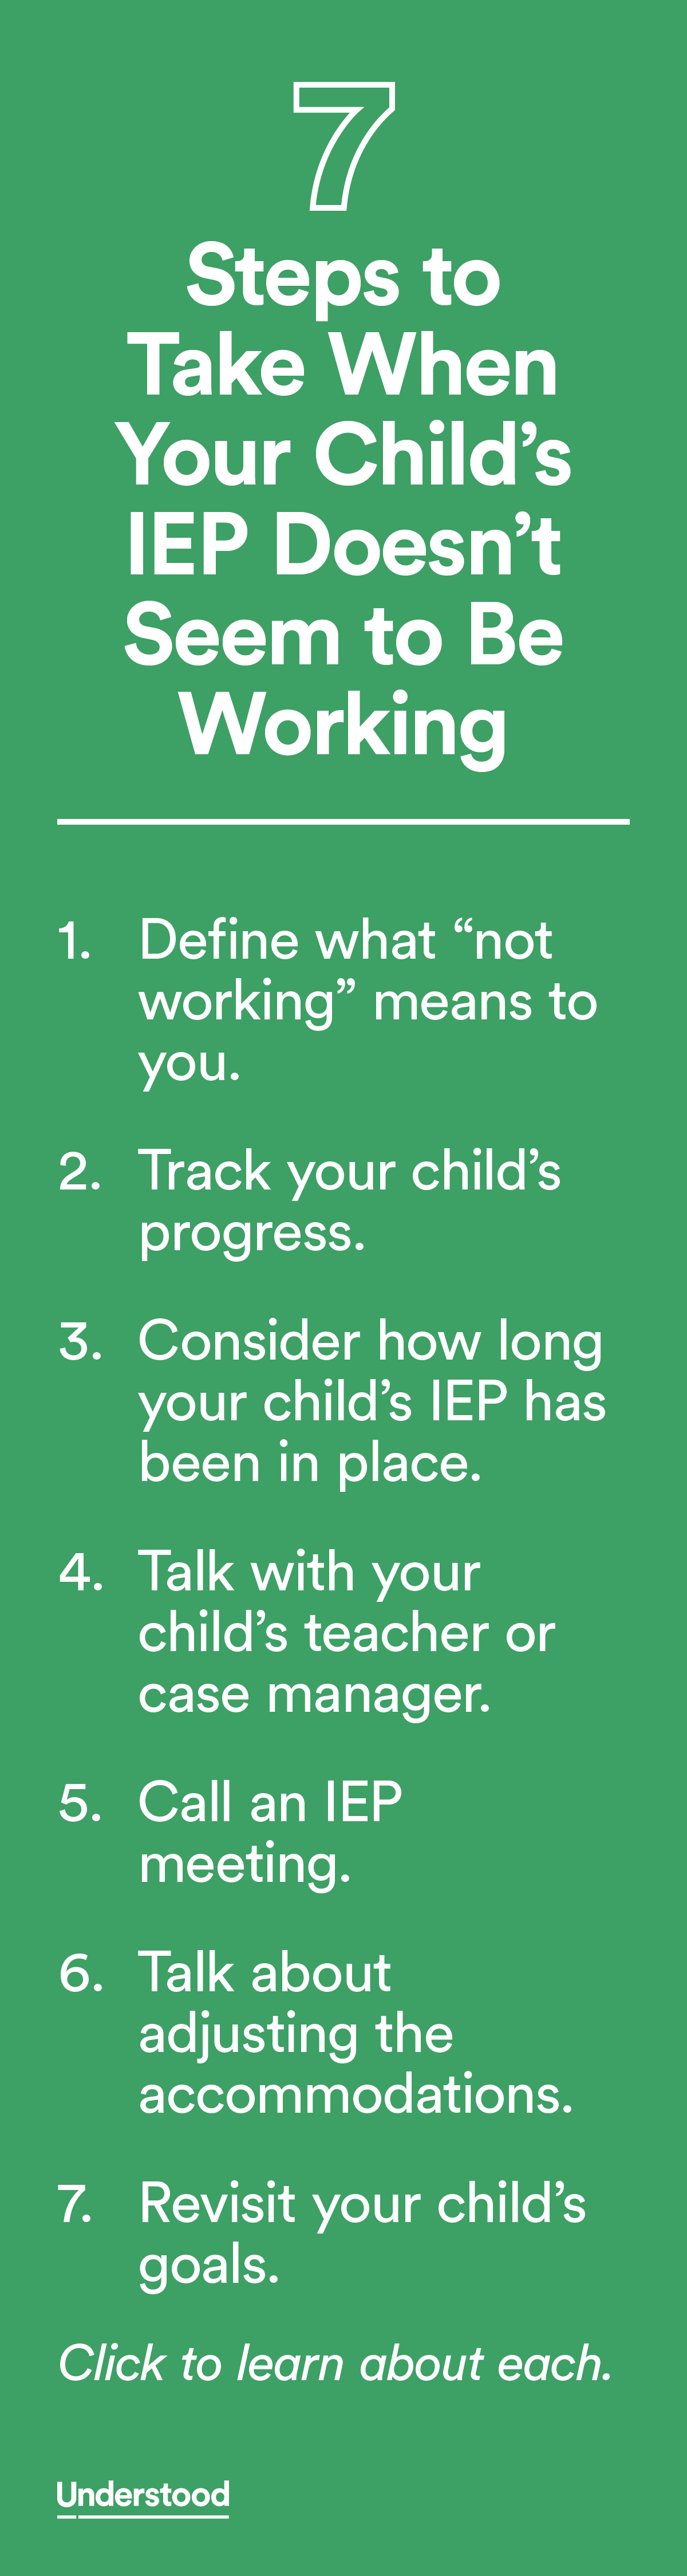 The Teacher Isnt Following My Childs >> My Child S Iep Doesn T Seem To Be Working Now What Ieps